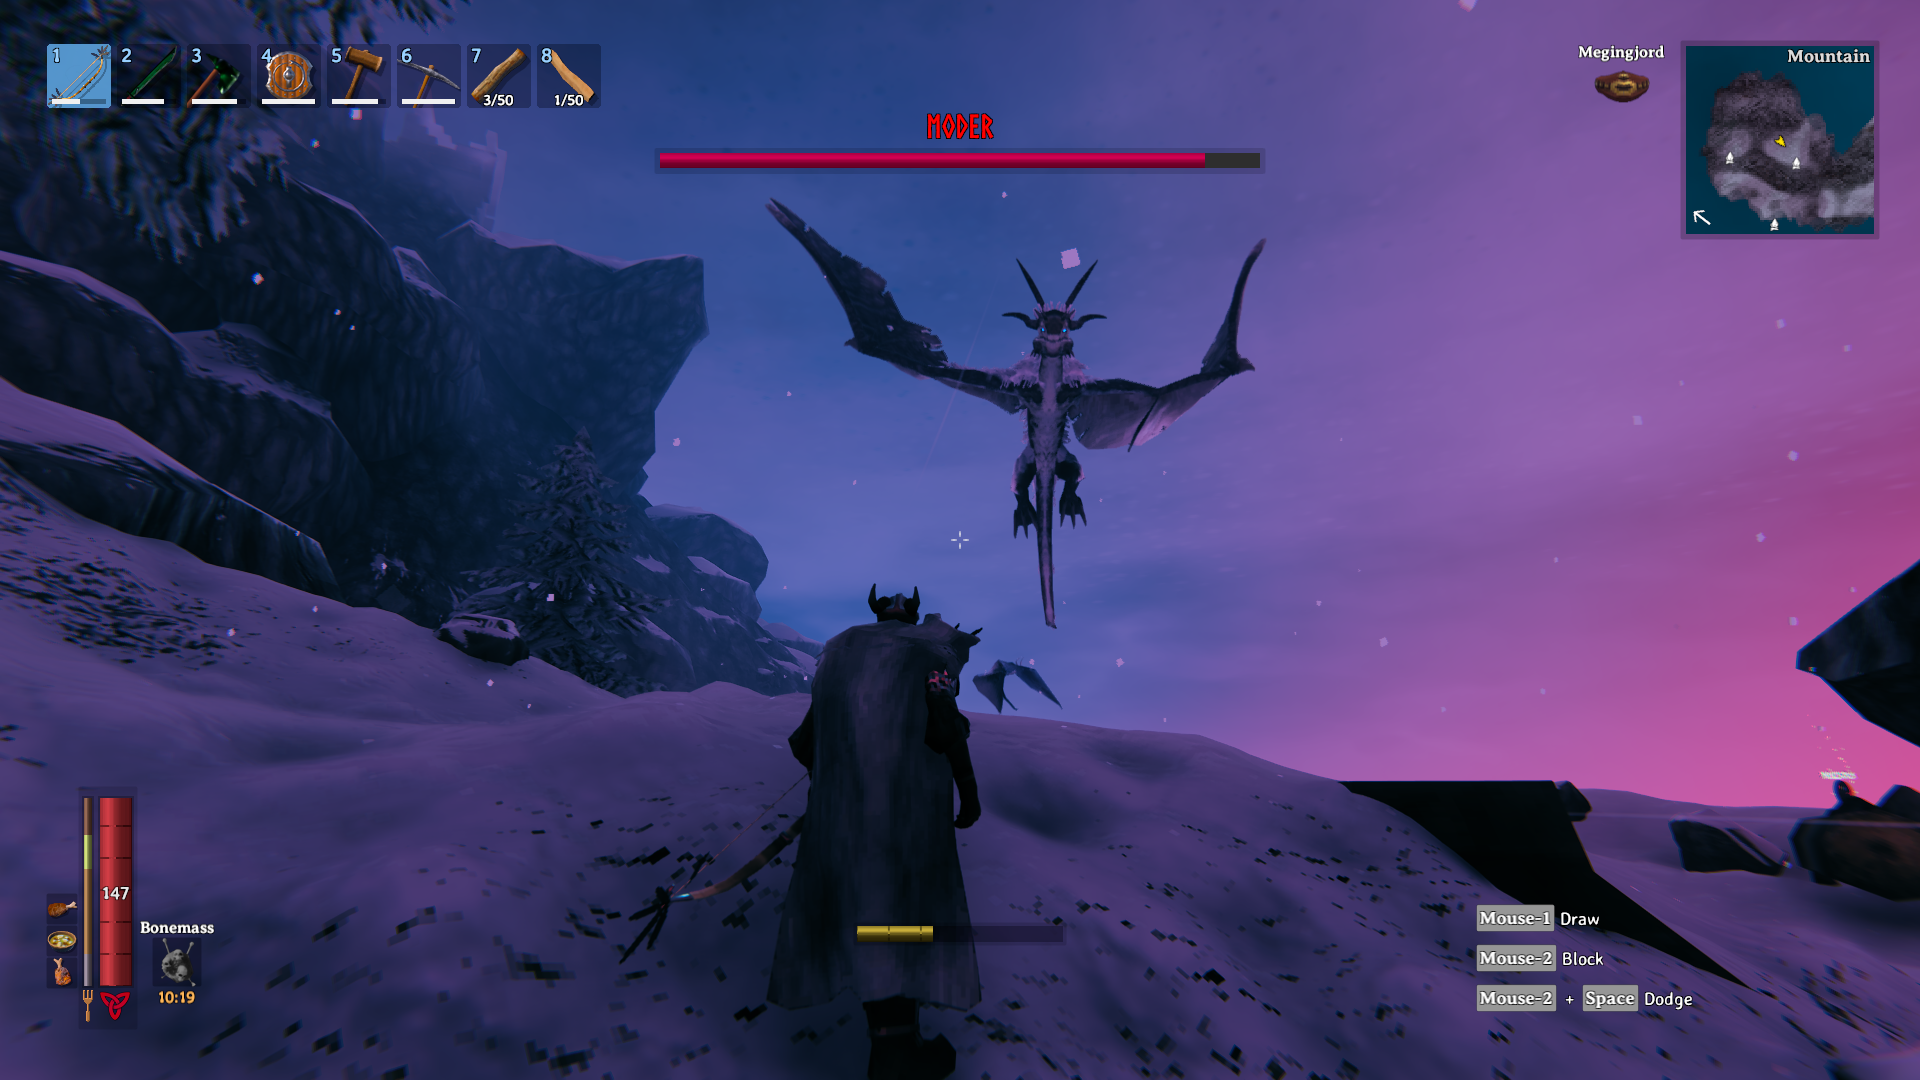 Moder the dragon flying in front of a player in Valheim